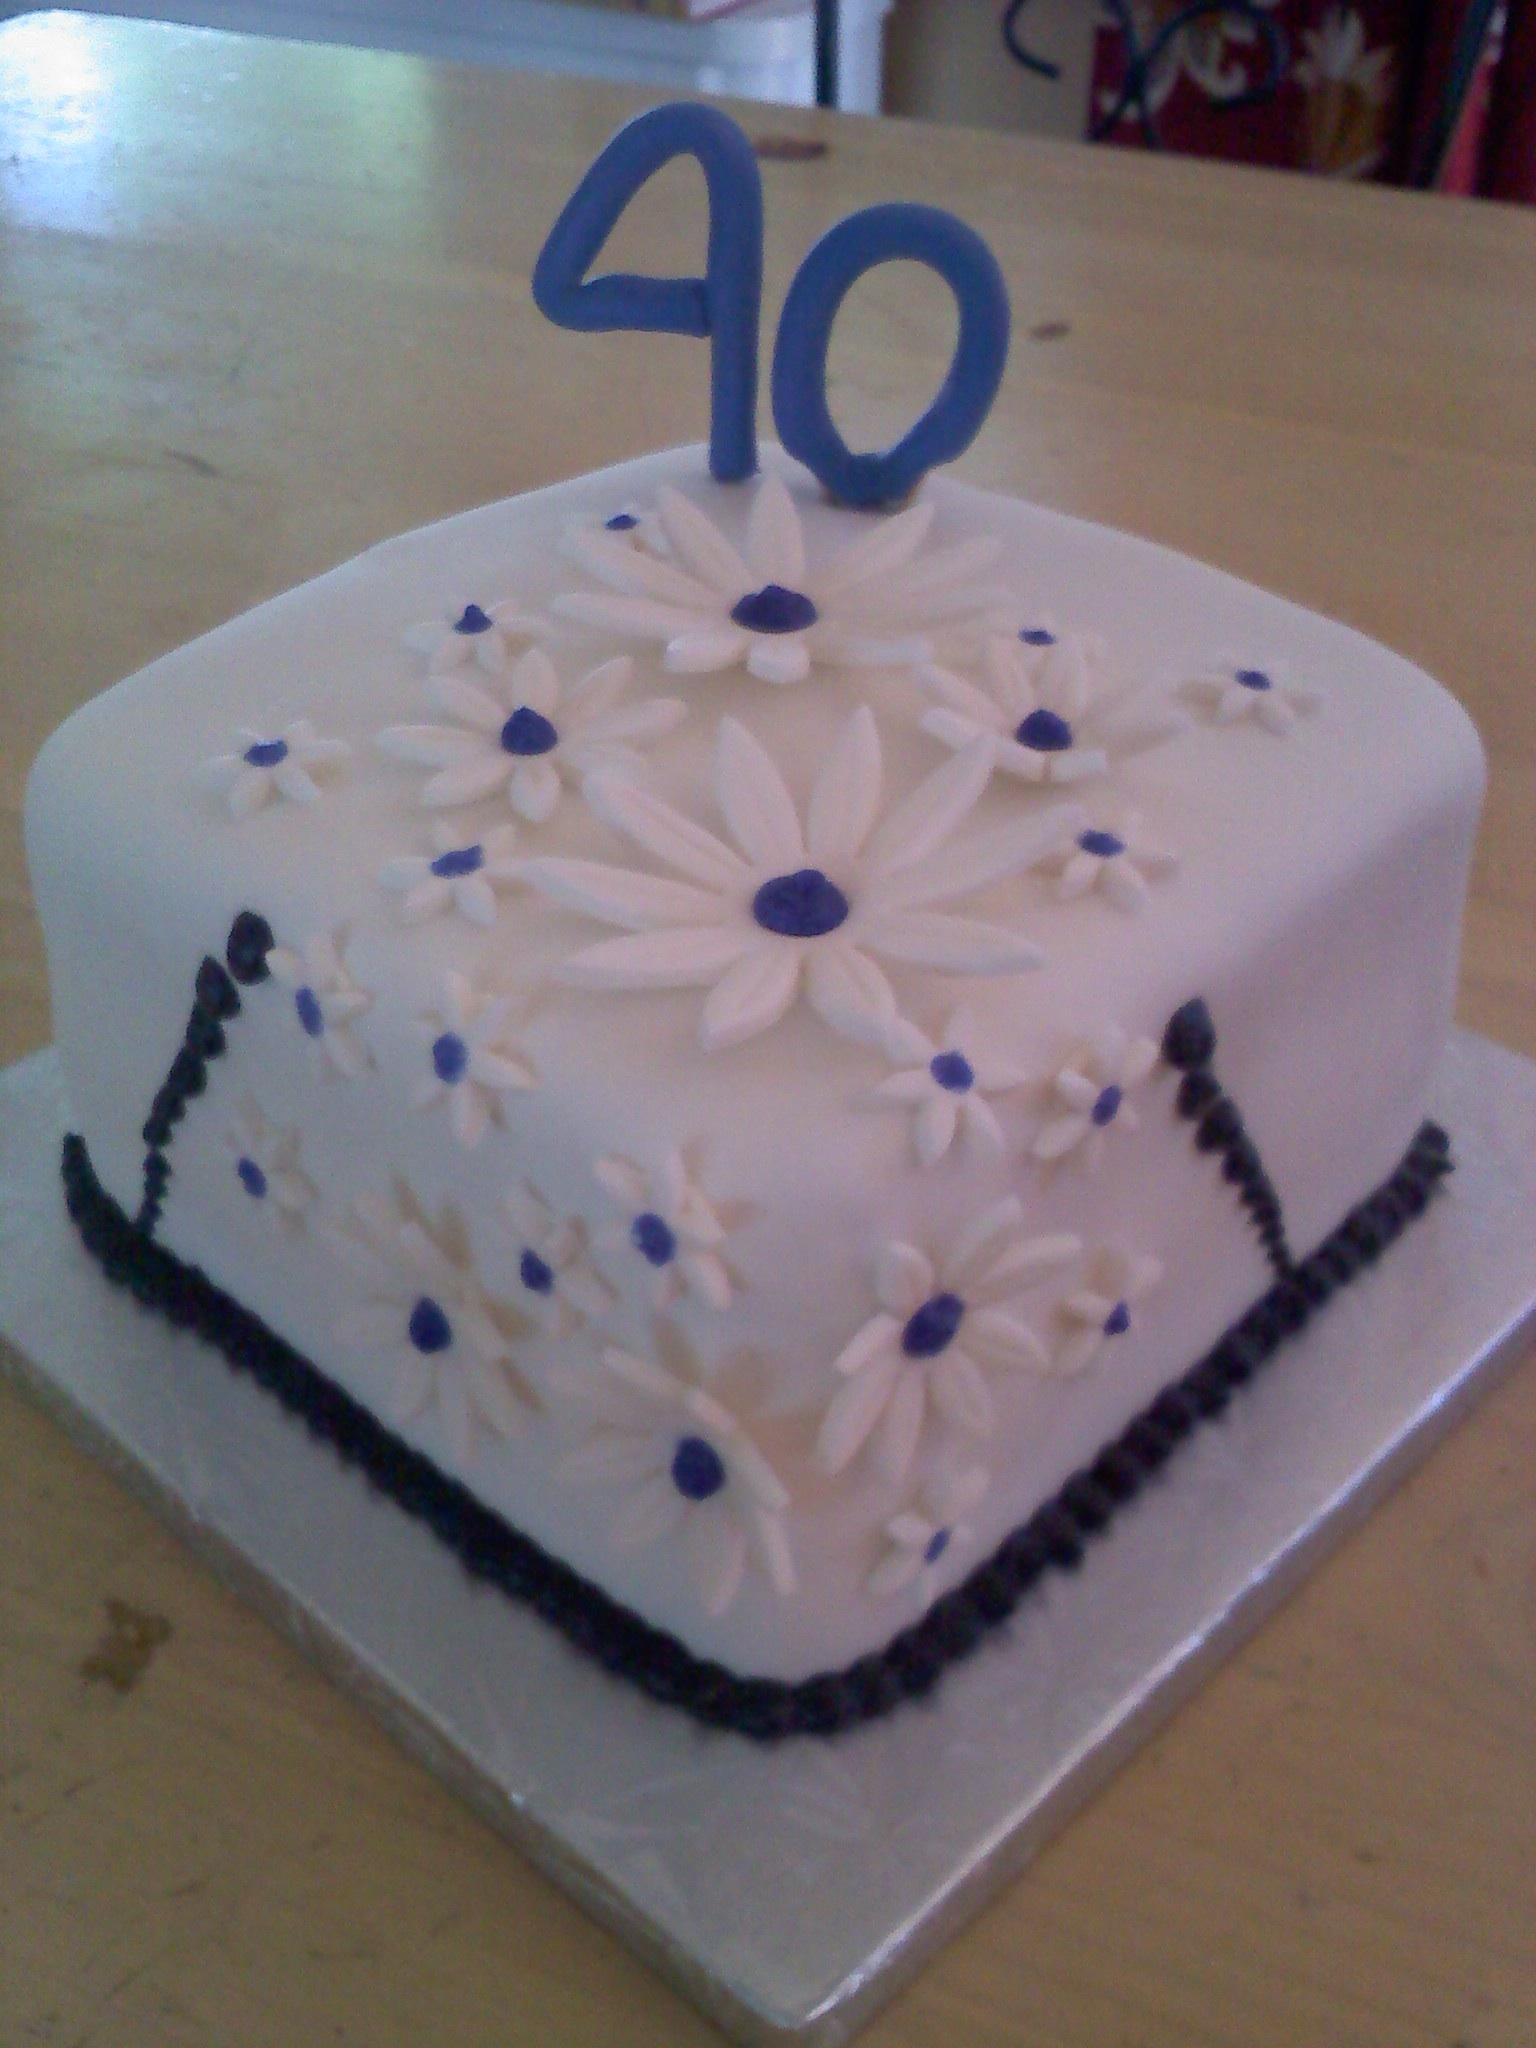 marias 40th cake Birthday Cake For Best Friend Female